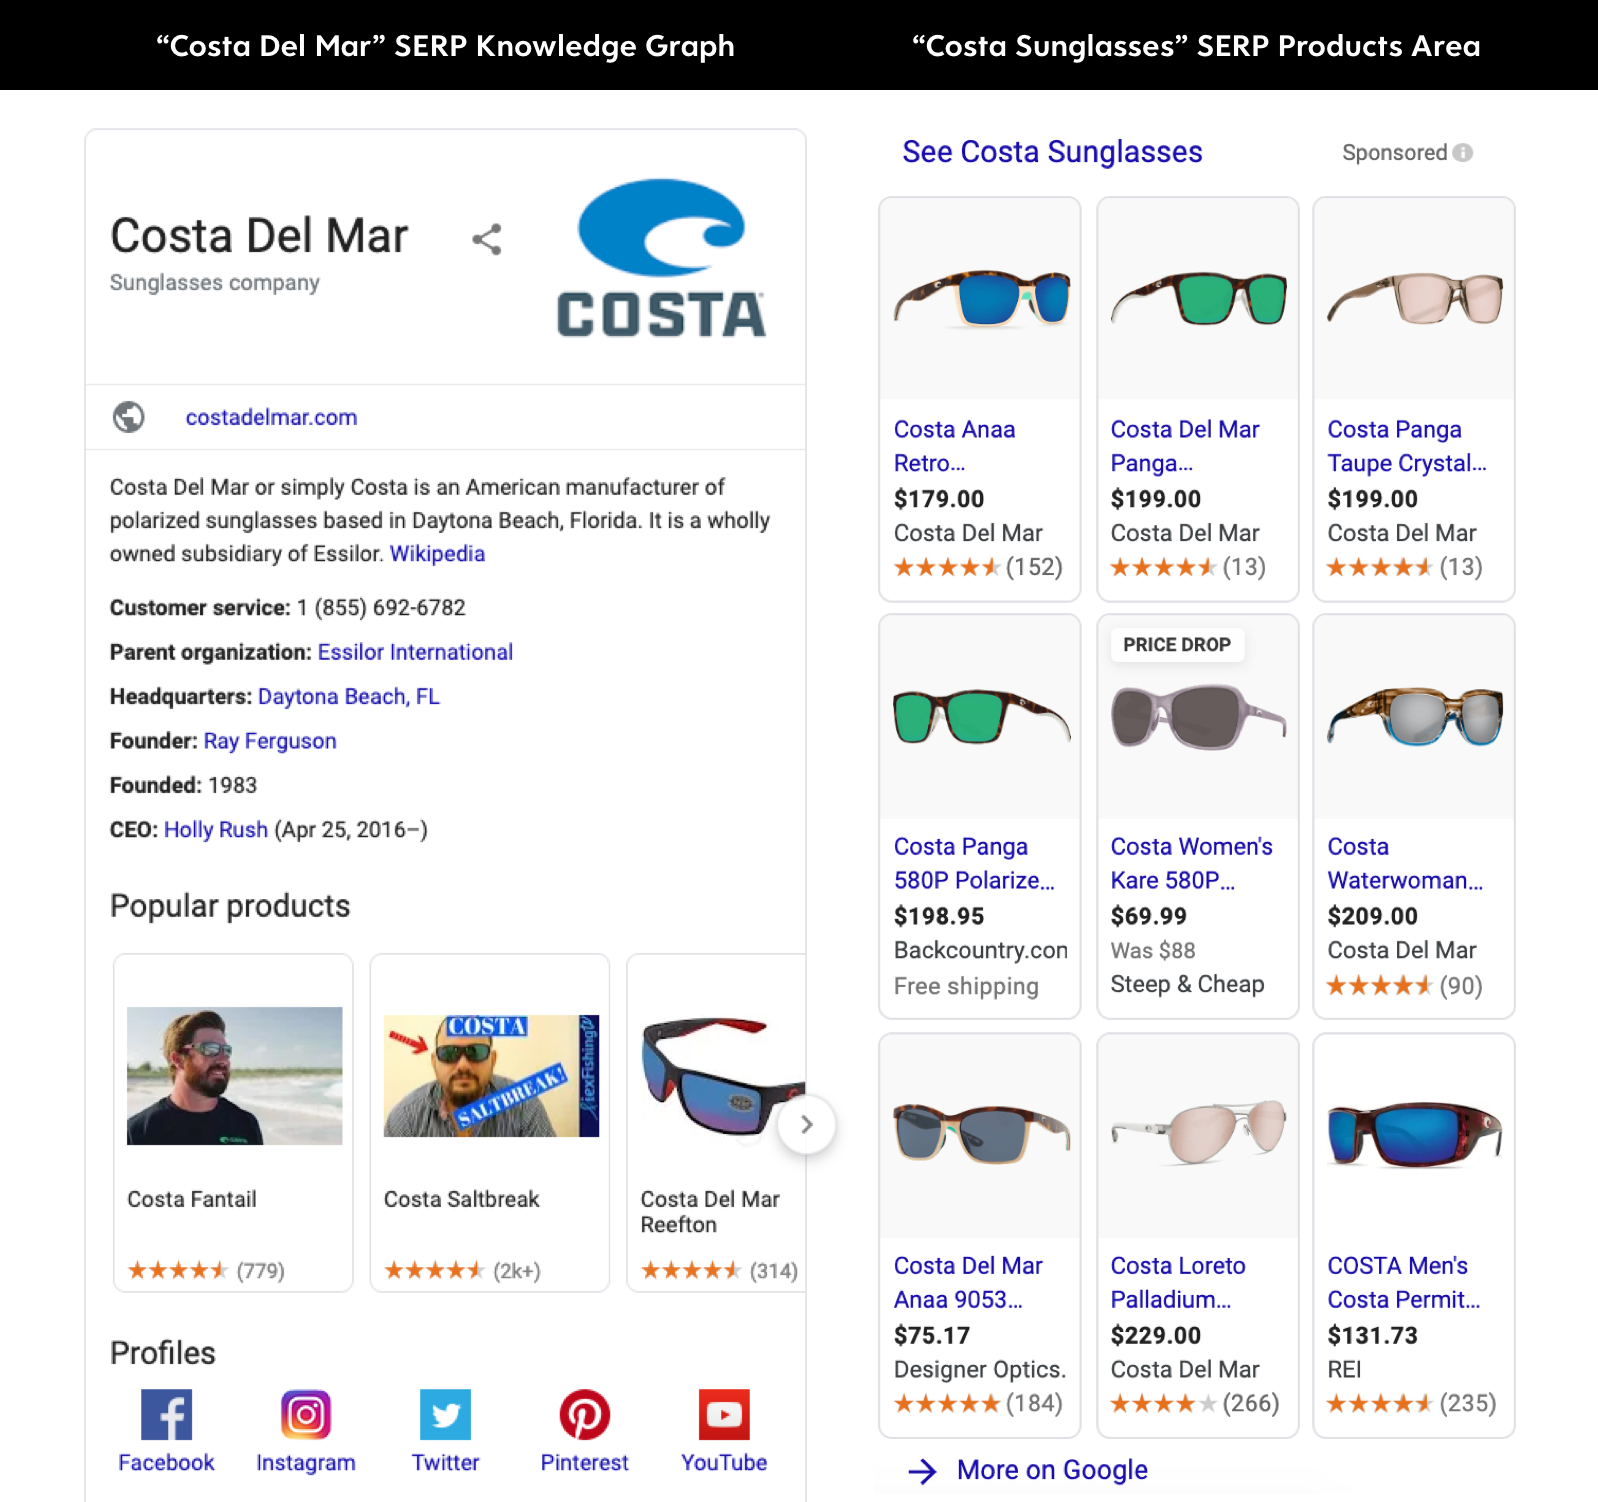 Costa Del Mar company Knowledge Graph and Product Listing SERP